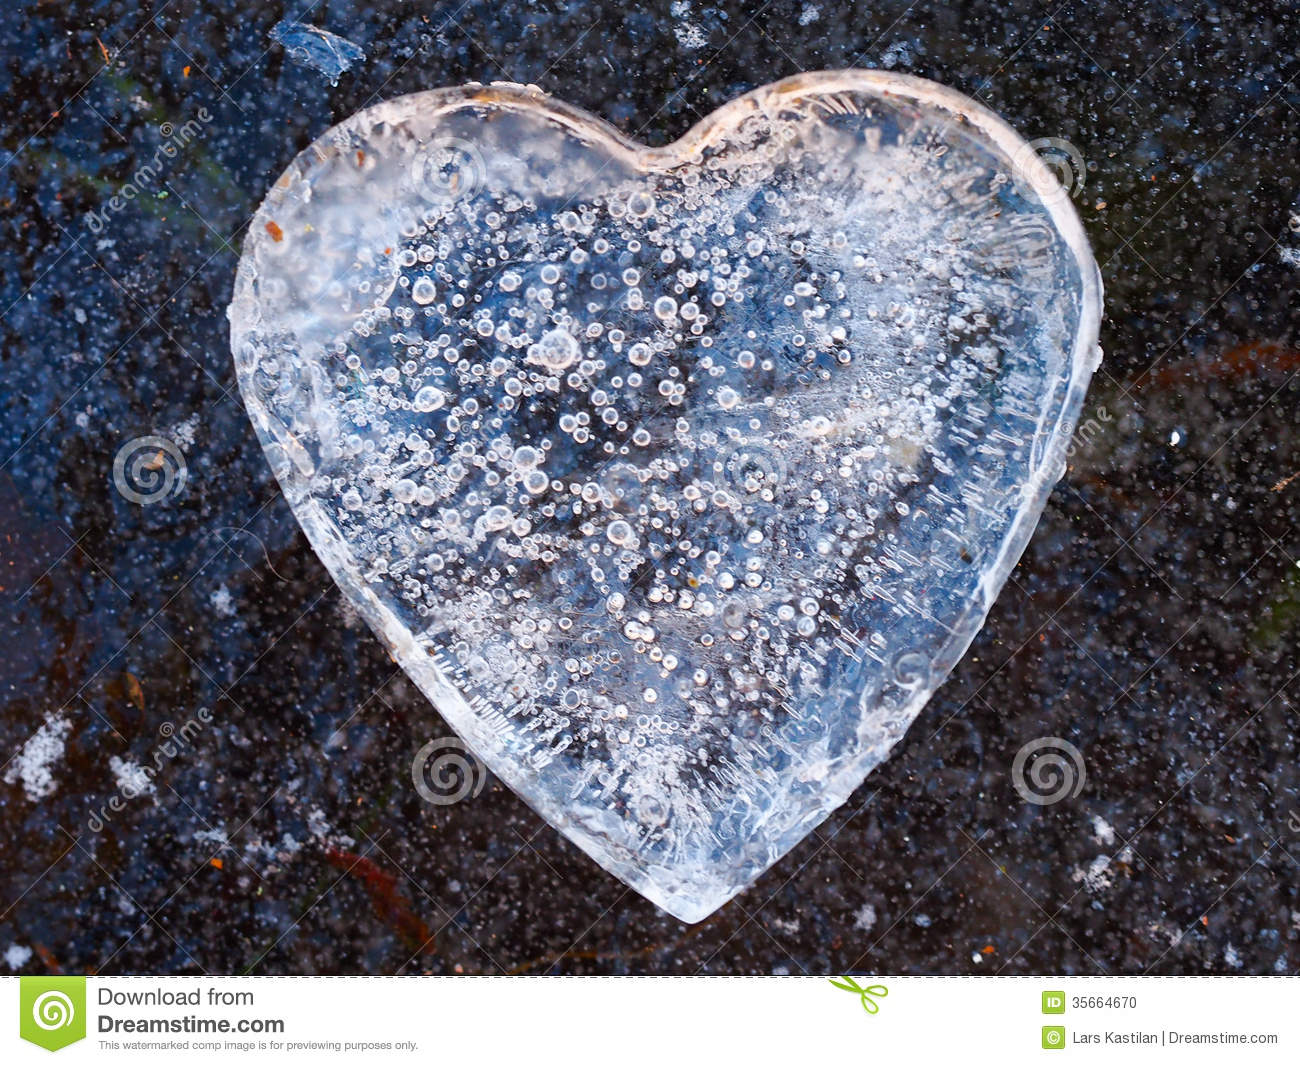 Ice Heart Stock Photo & More Pictures of Blue | iStock